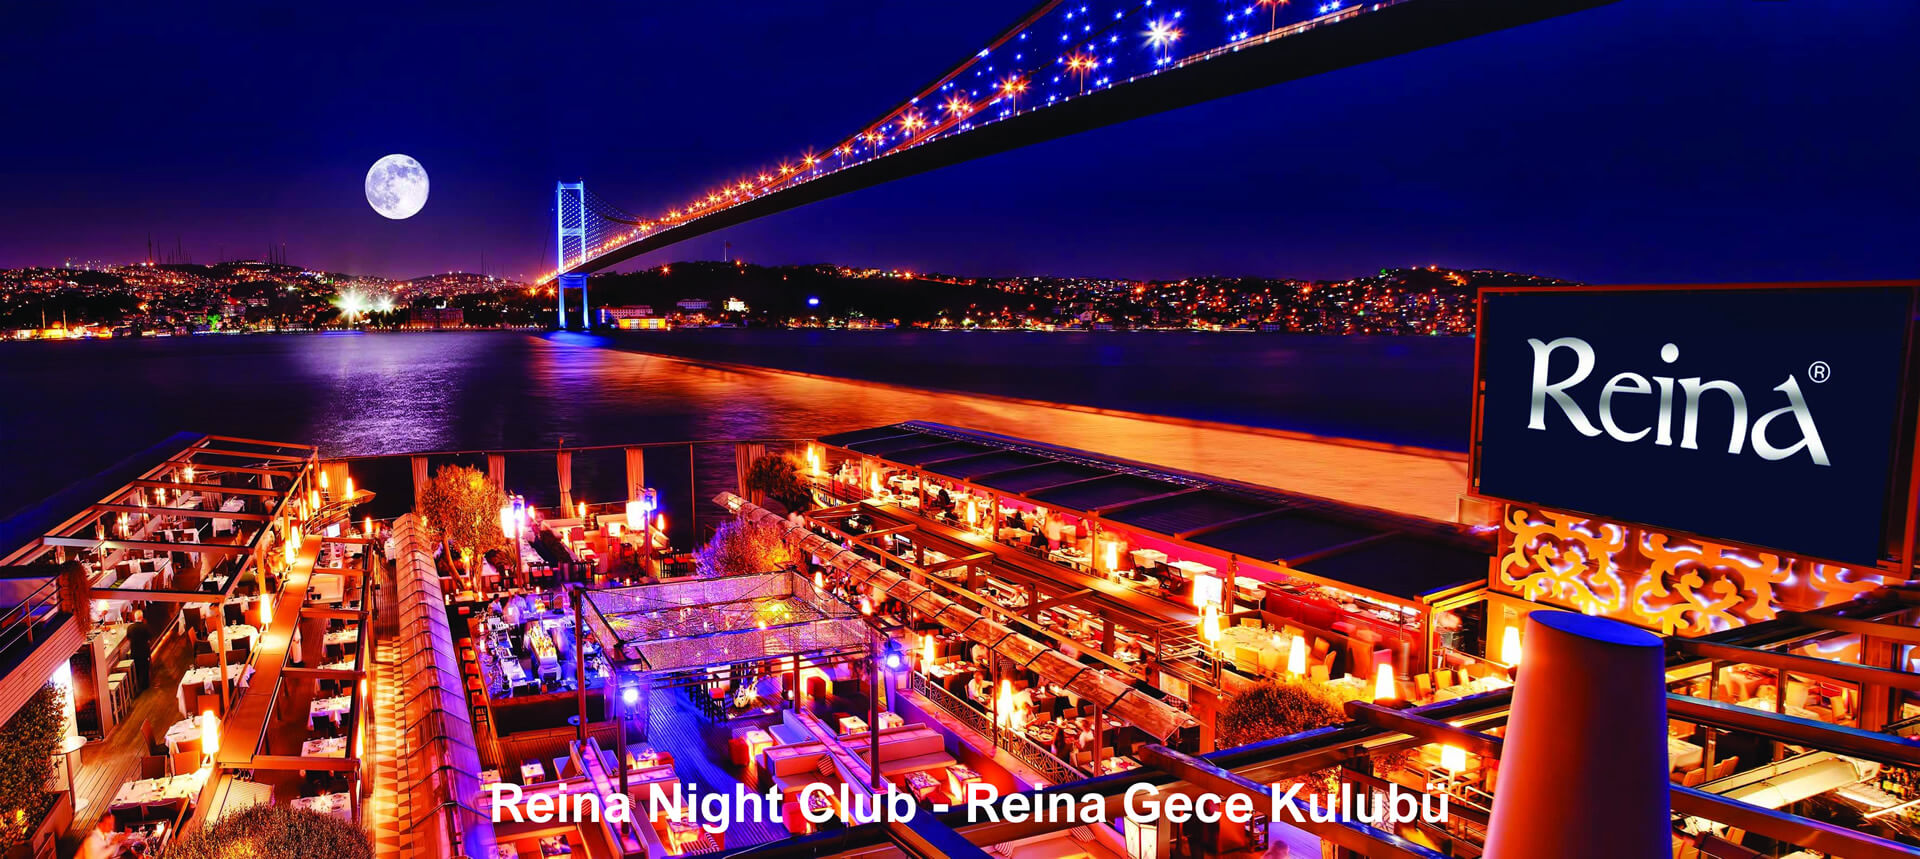 Reina Night Club - Reina Gece Kulubü